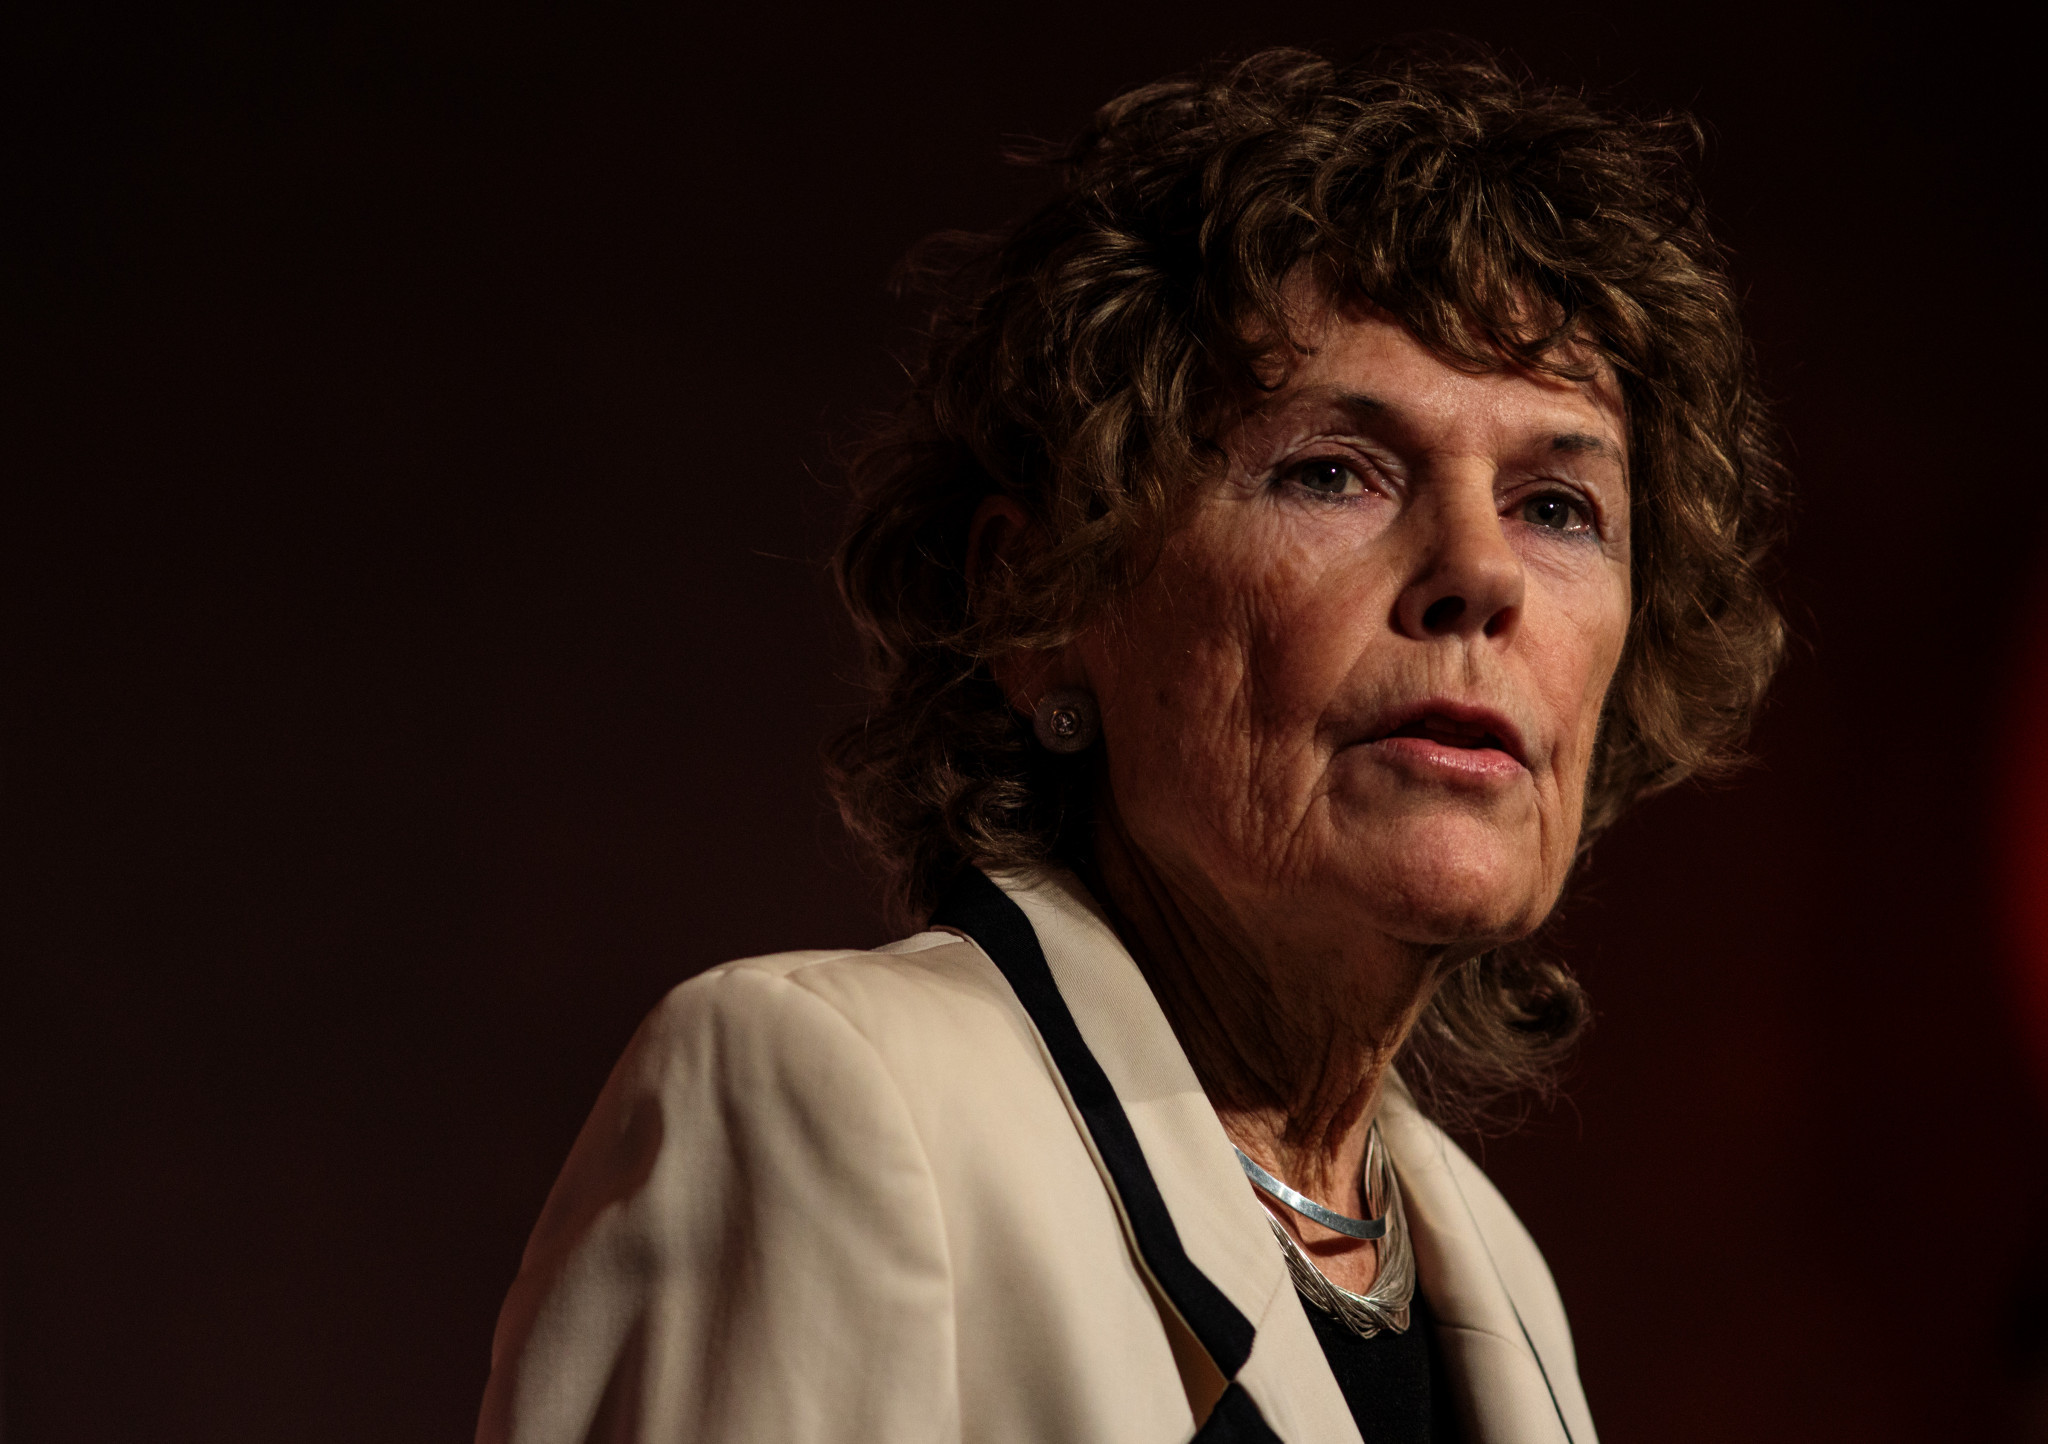 Kate Hoey, who served as a Member of Parliament in the UK for more than 30 years was recently appointed to the House of Lord's ©Getty Images